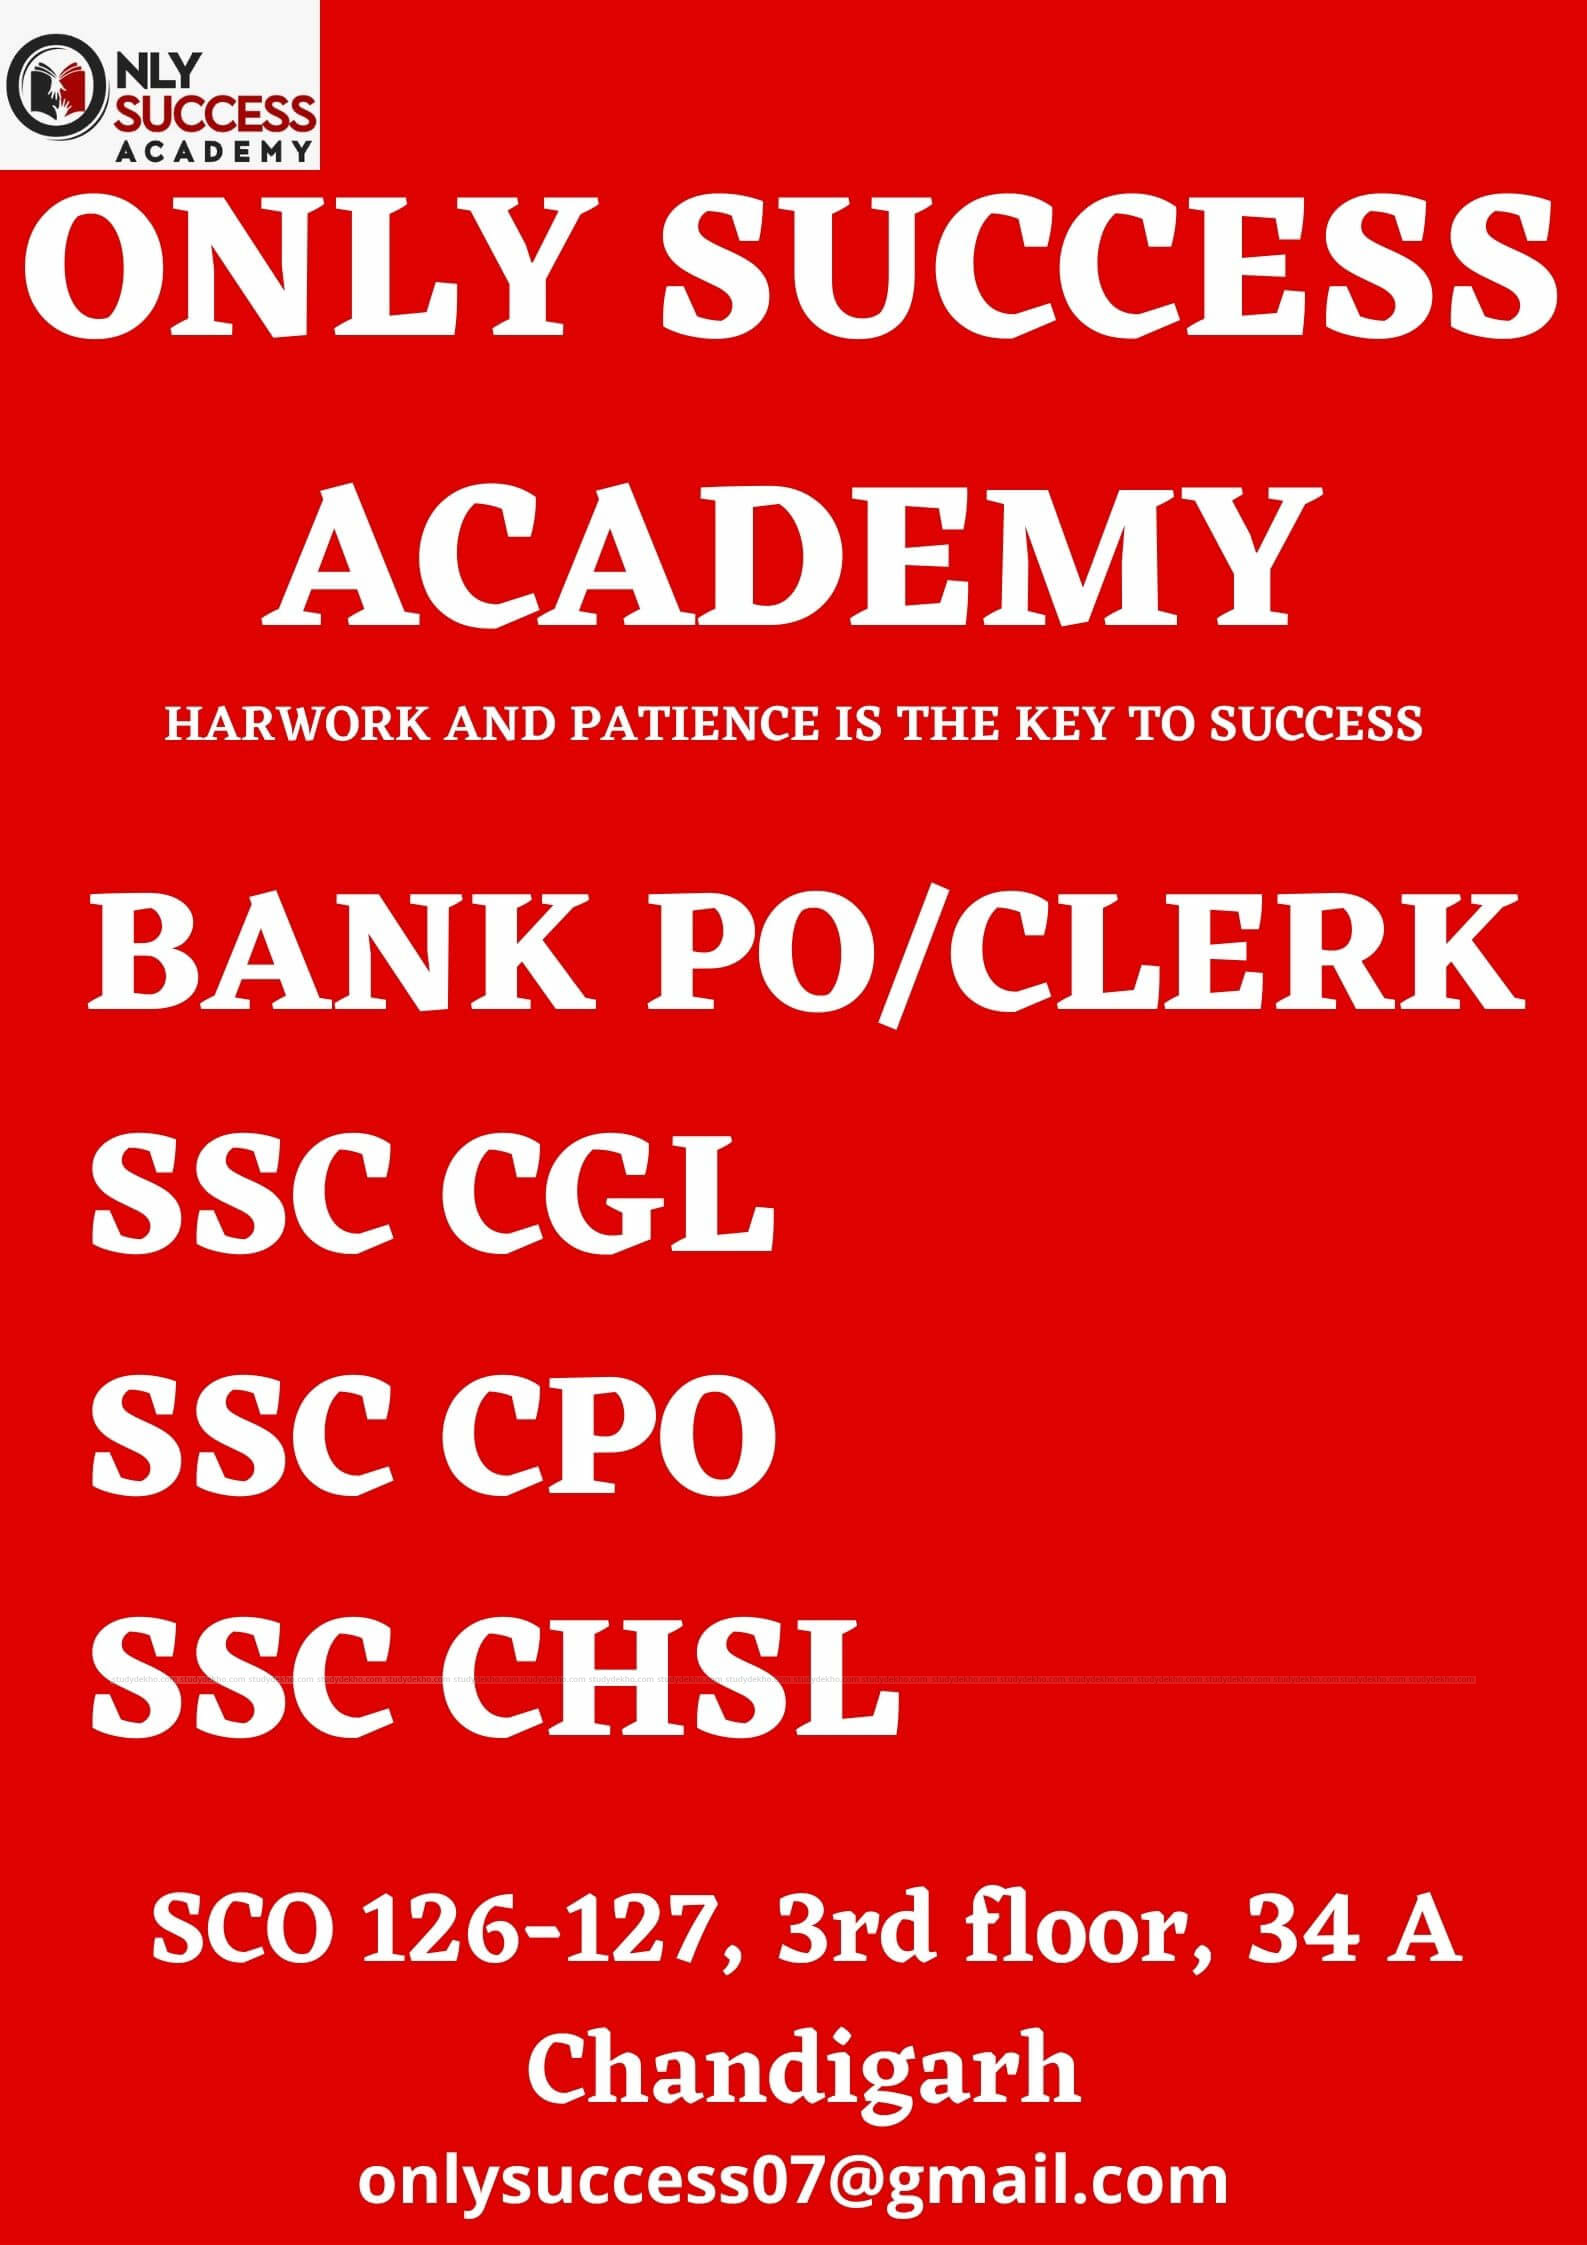 Only Success Academy Images